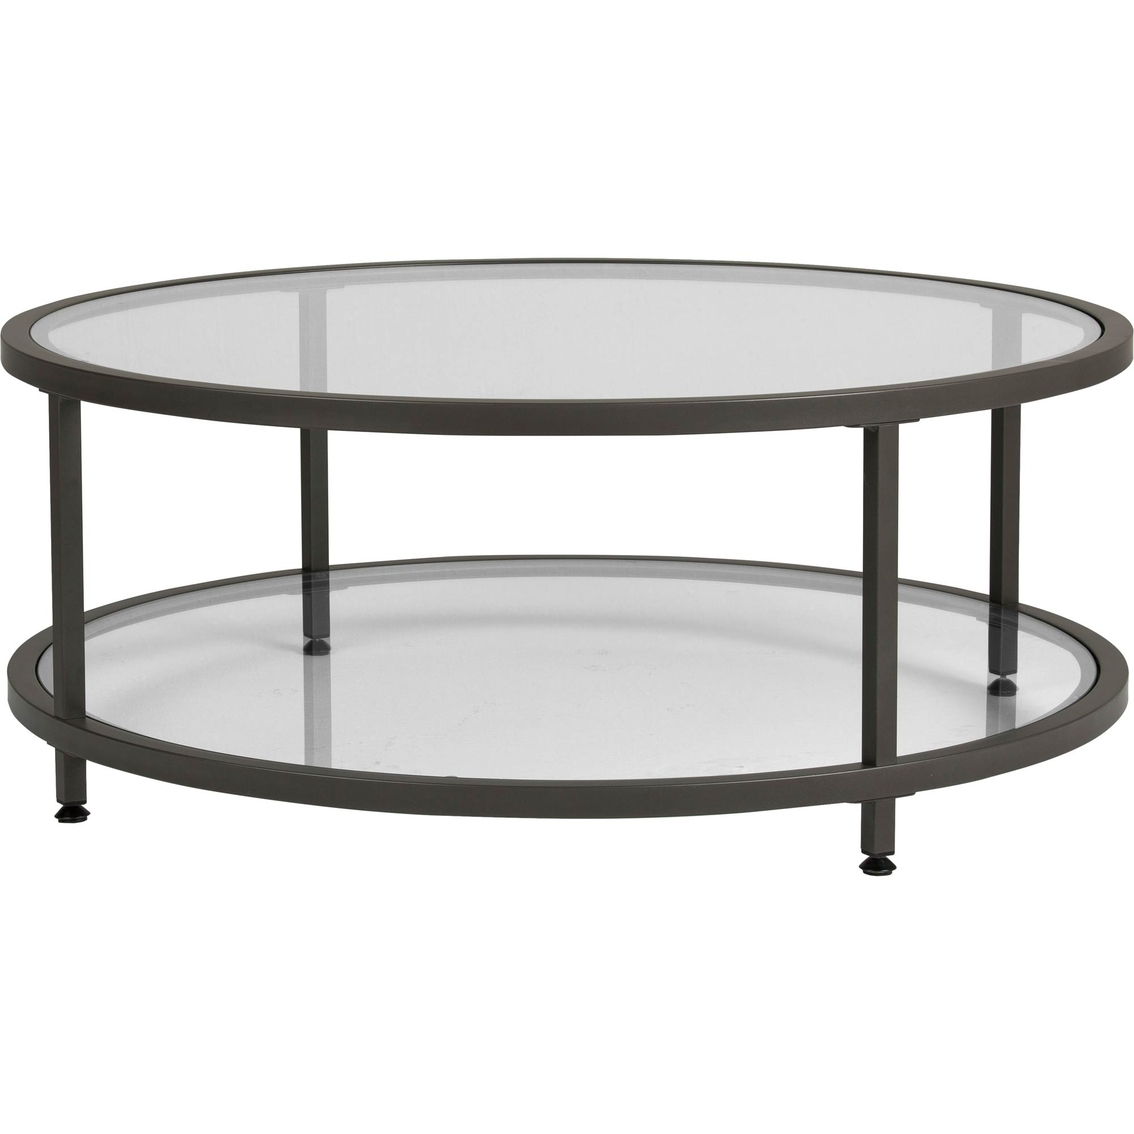 Picture of: Studio Designs Home Camber Modern Glass Round Coffee Table Living Room Tables Furniture Appliances Shop The Exchange